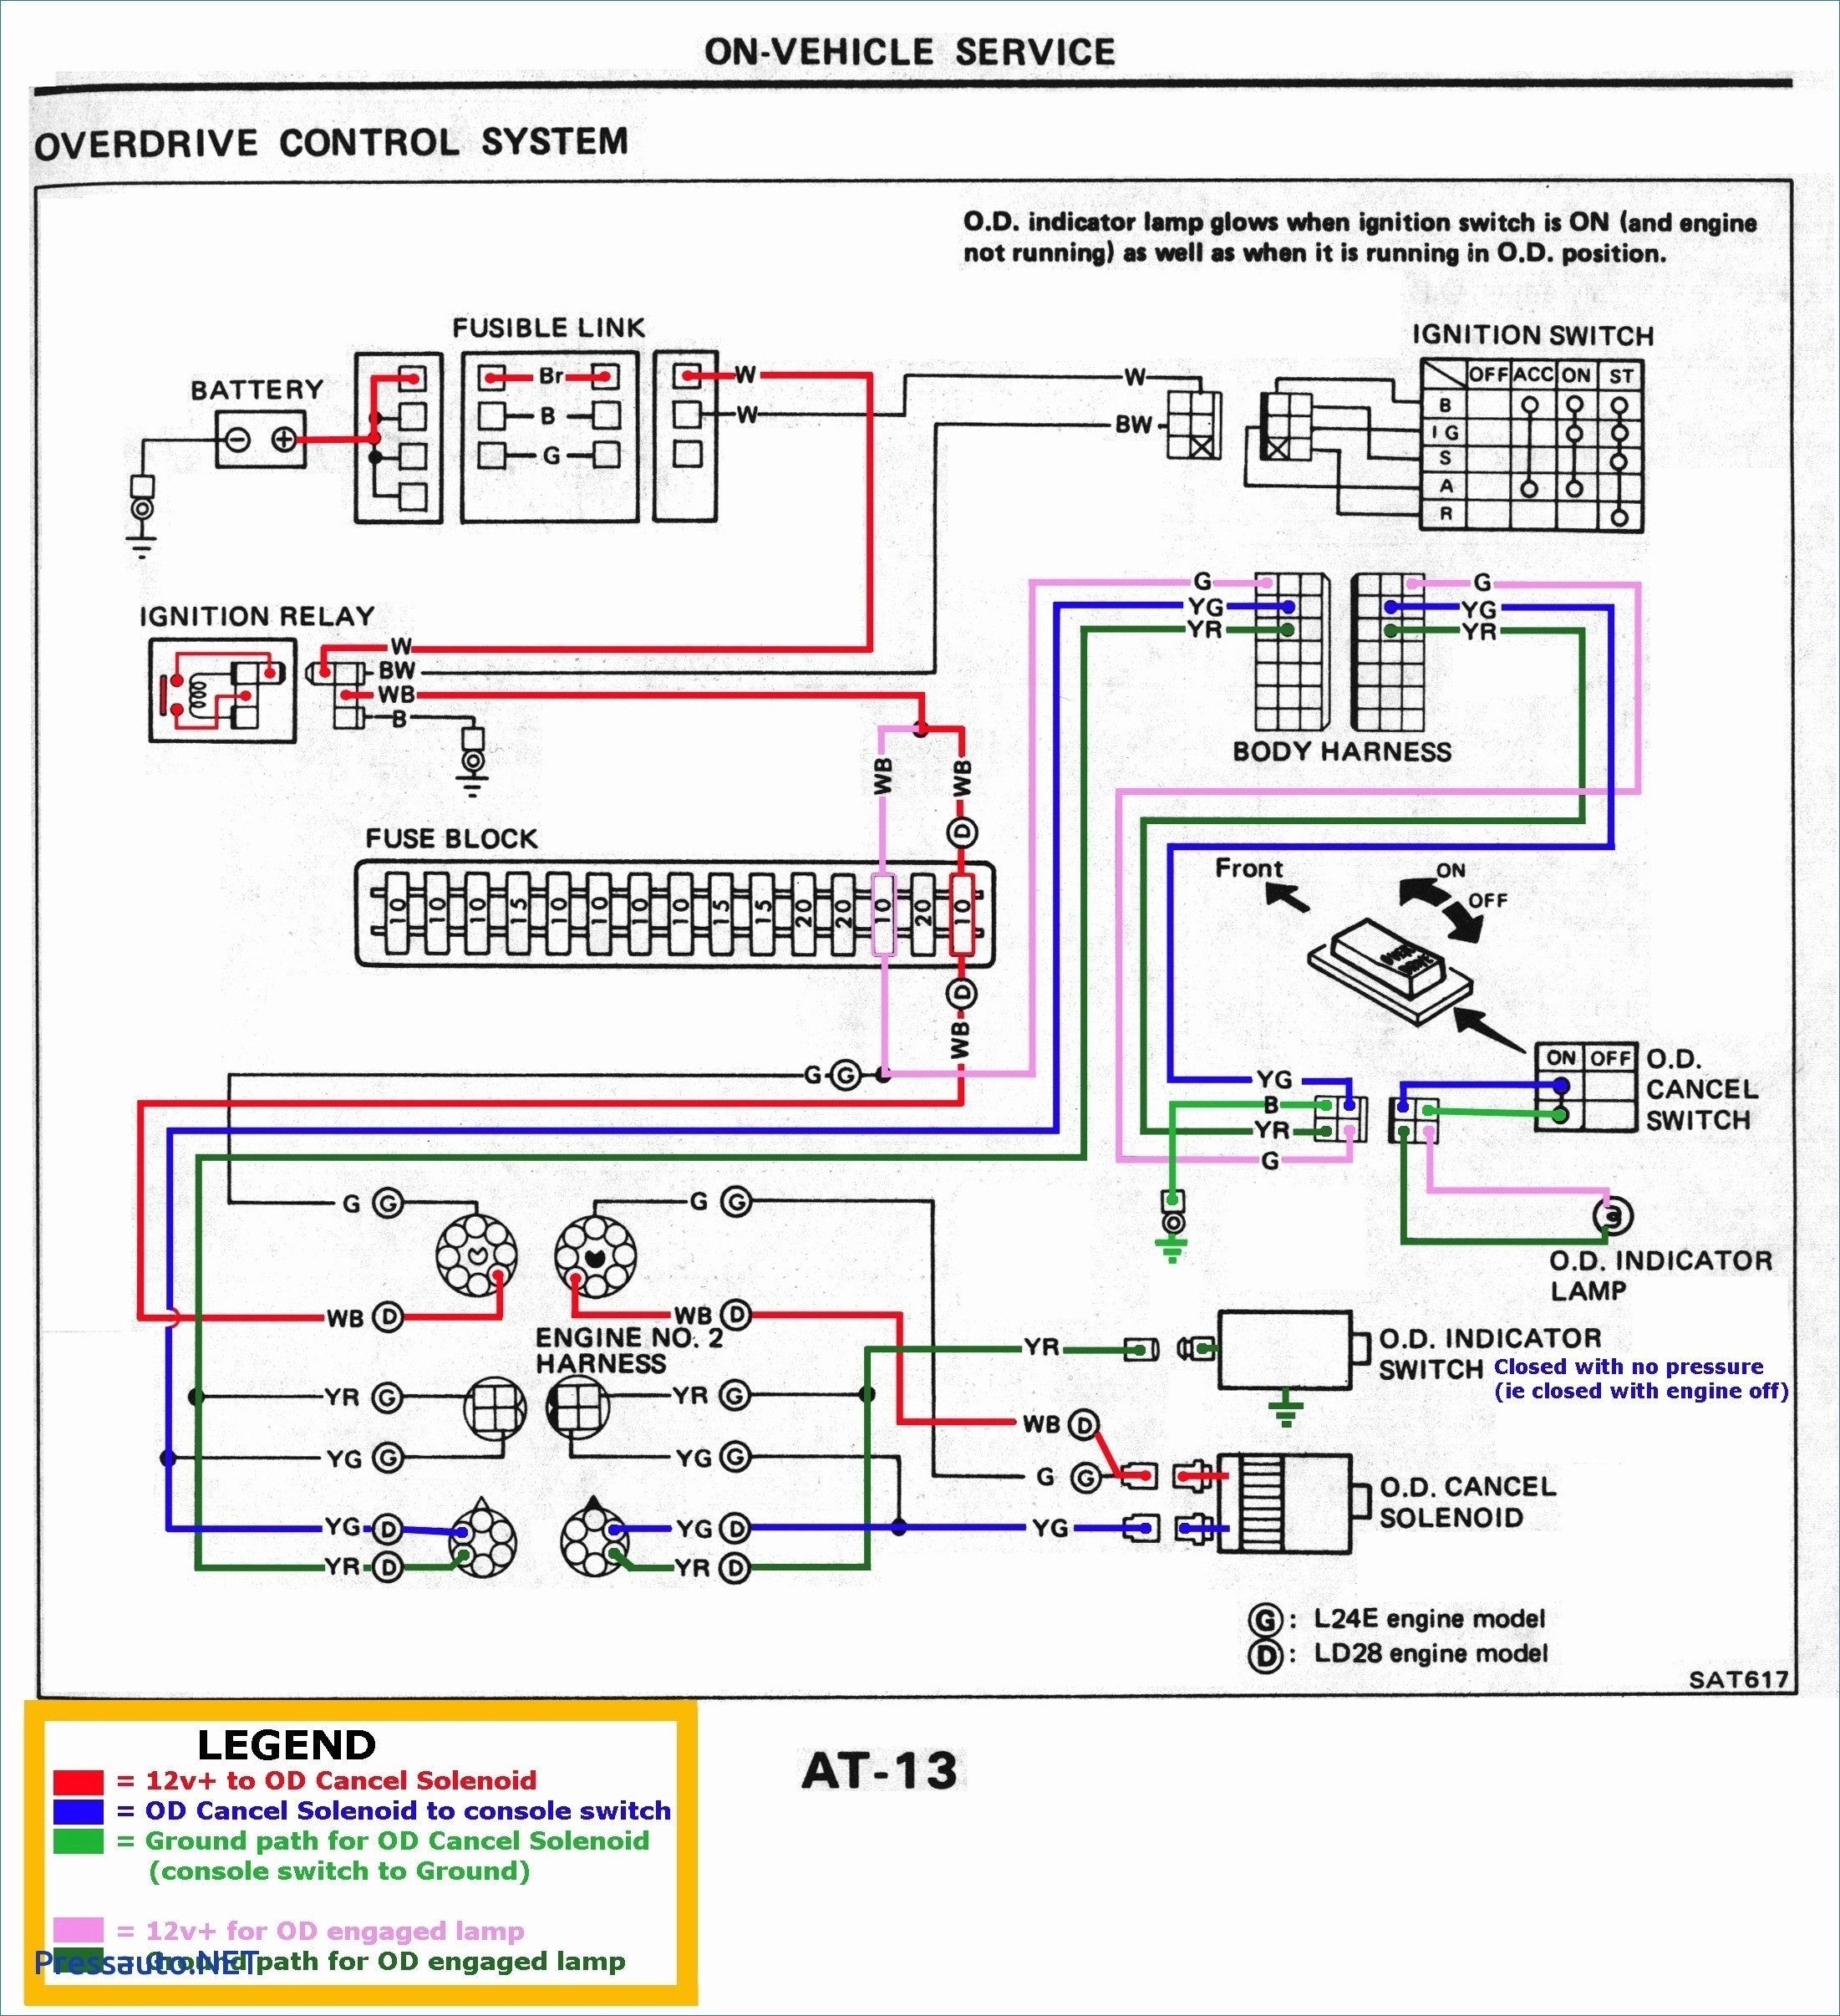 john deere lawn mower wiring diagram Collection-John Deere 318 Ignition Switch Wiring Diagram Valid John Deere Ignition Switch Wiring Diagram Collection 14-f